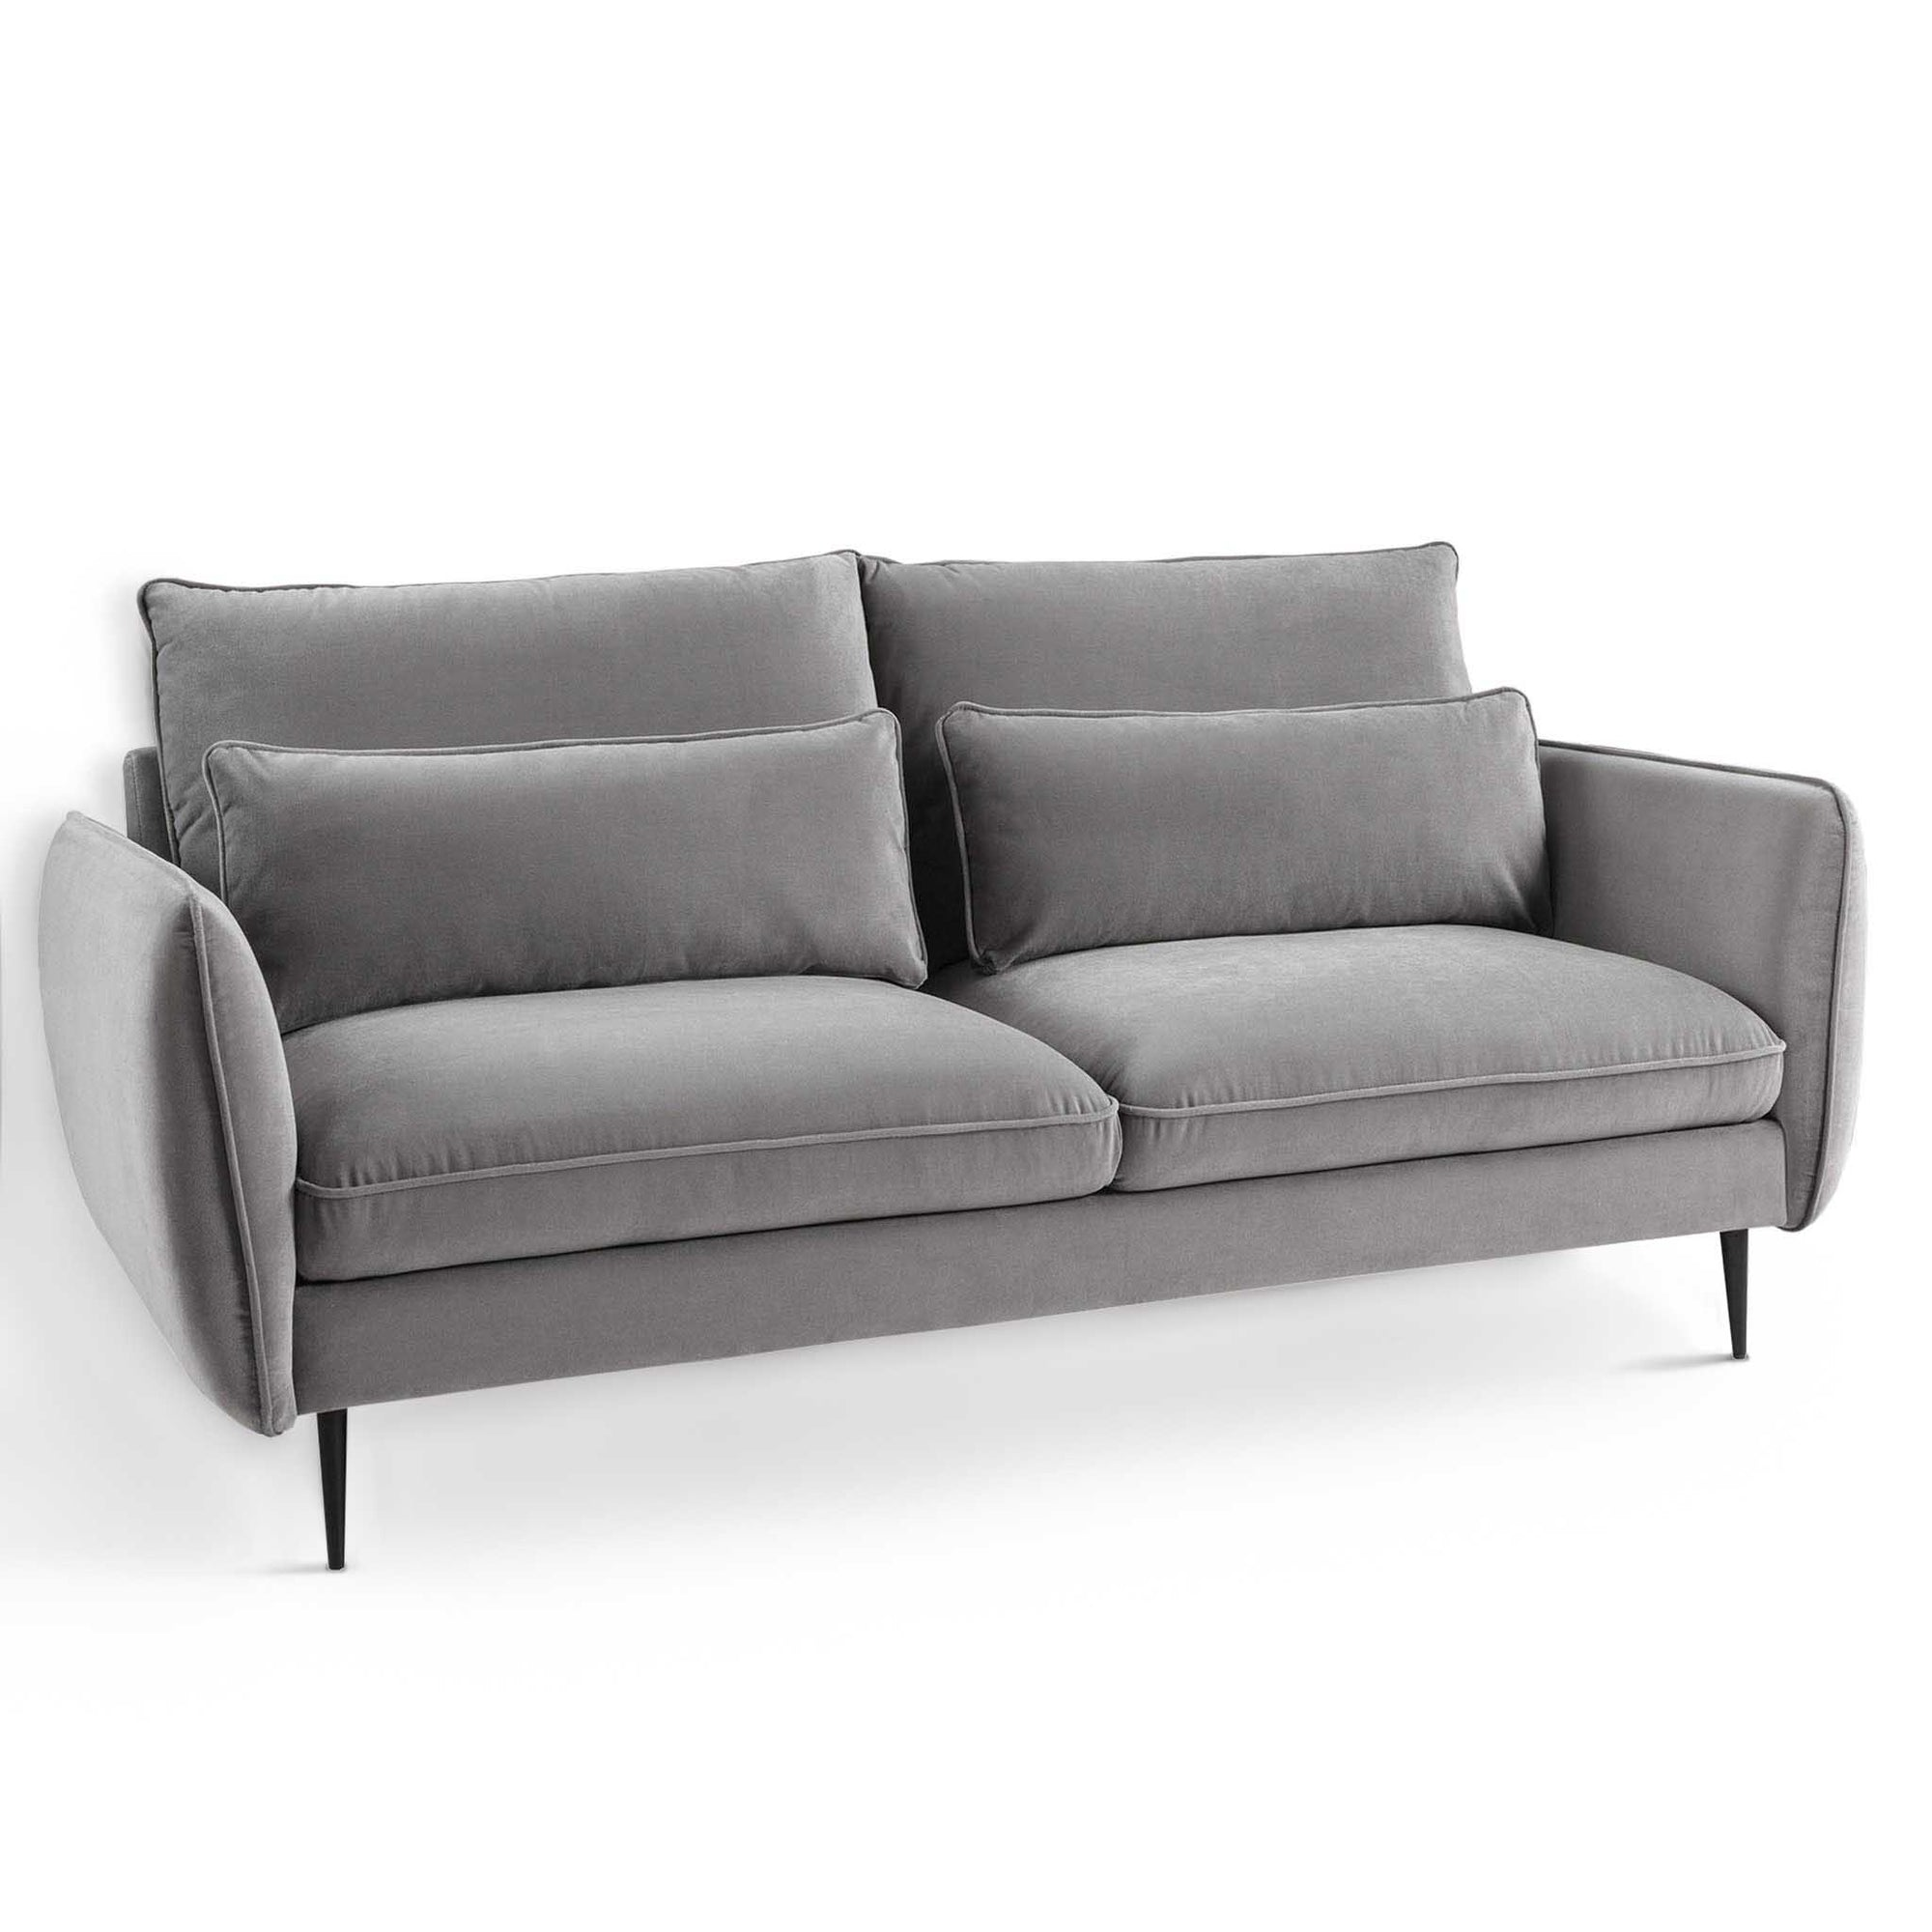 Rhonda Grey Velvet 3 Seater Sofa from Roseland Furniture